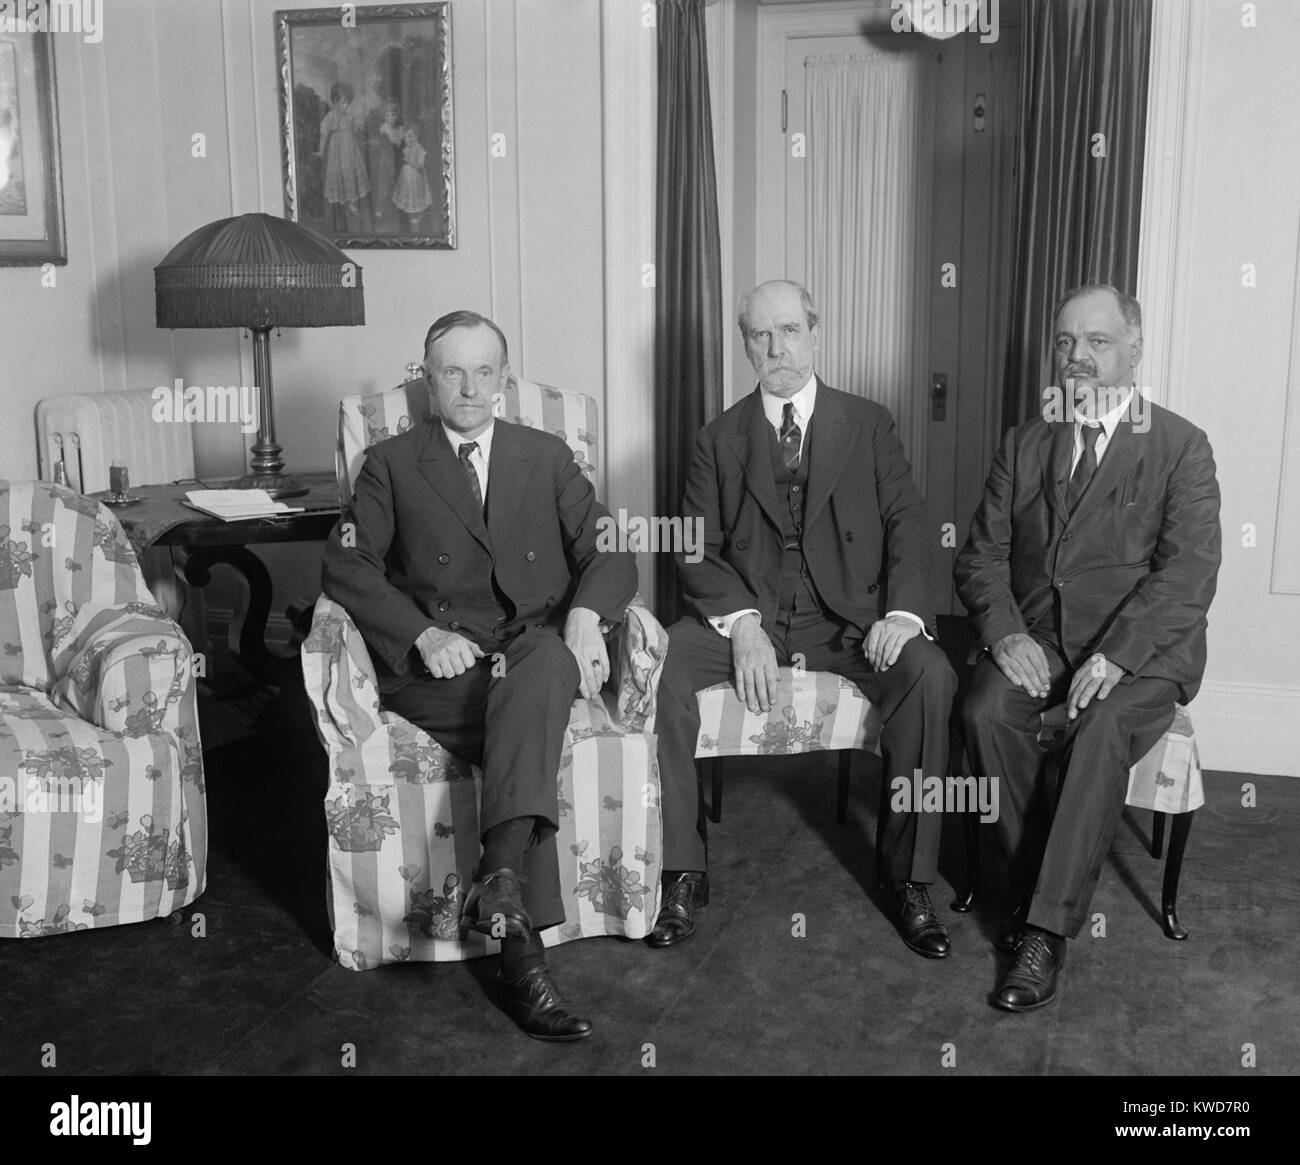 President Calvin Coolidge meeting with Charles Evans Hughes and Charles Curtis, August 3, 1923. Coolidge became - Stock Image